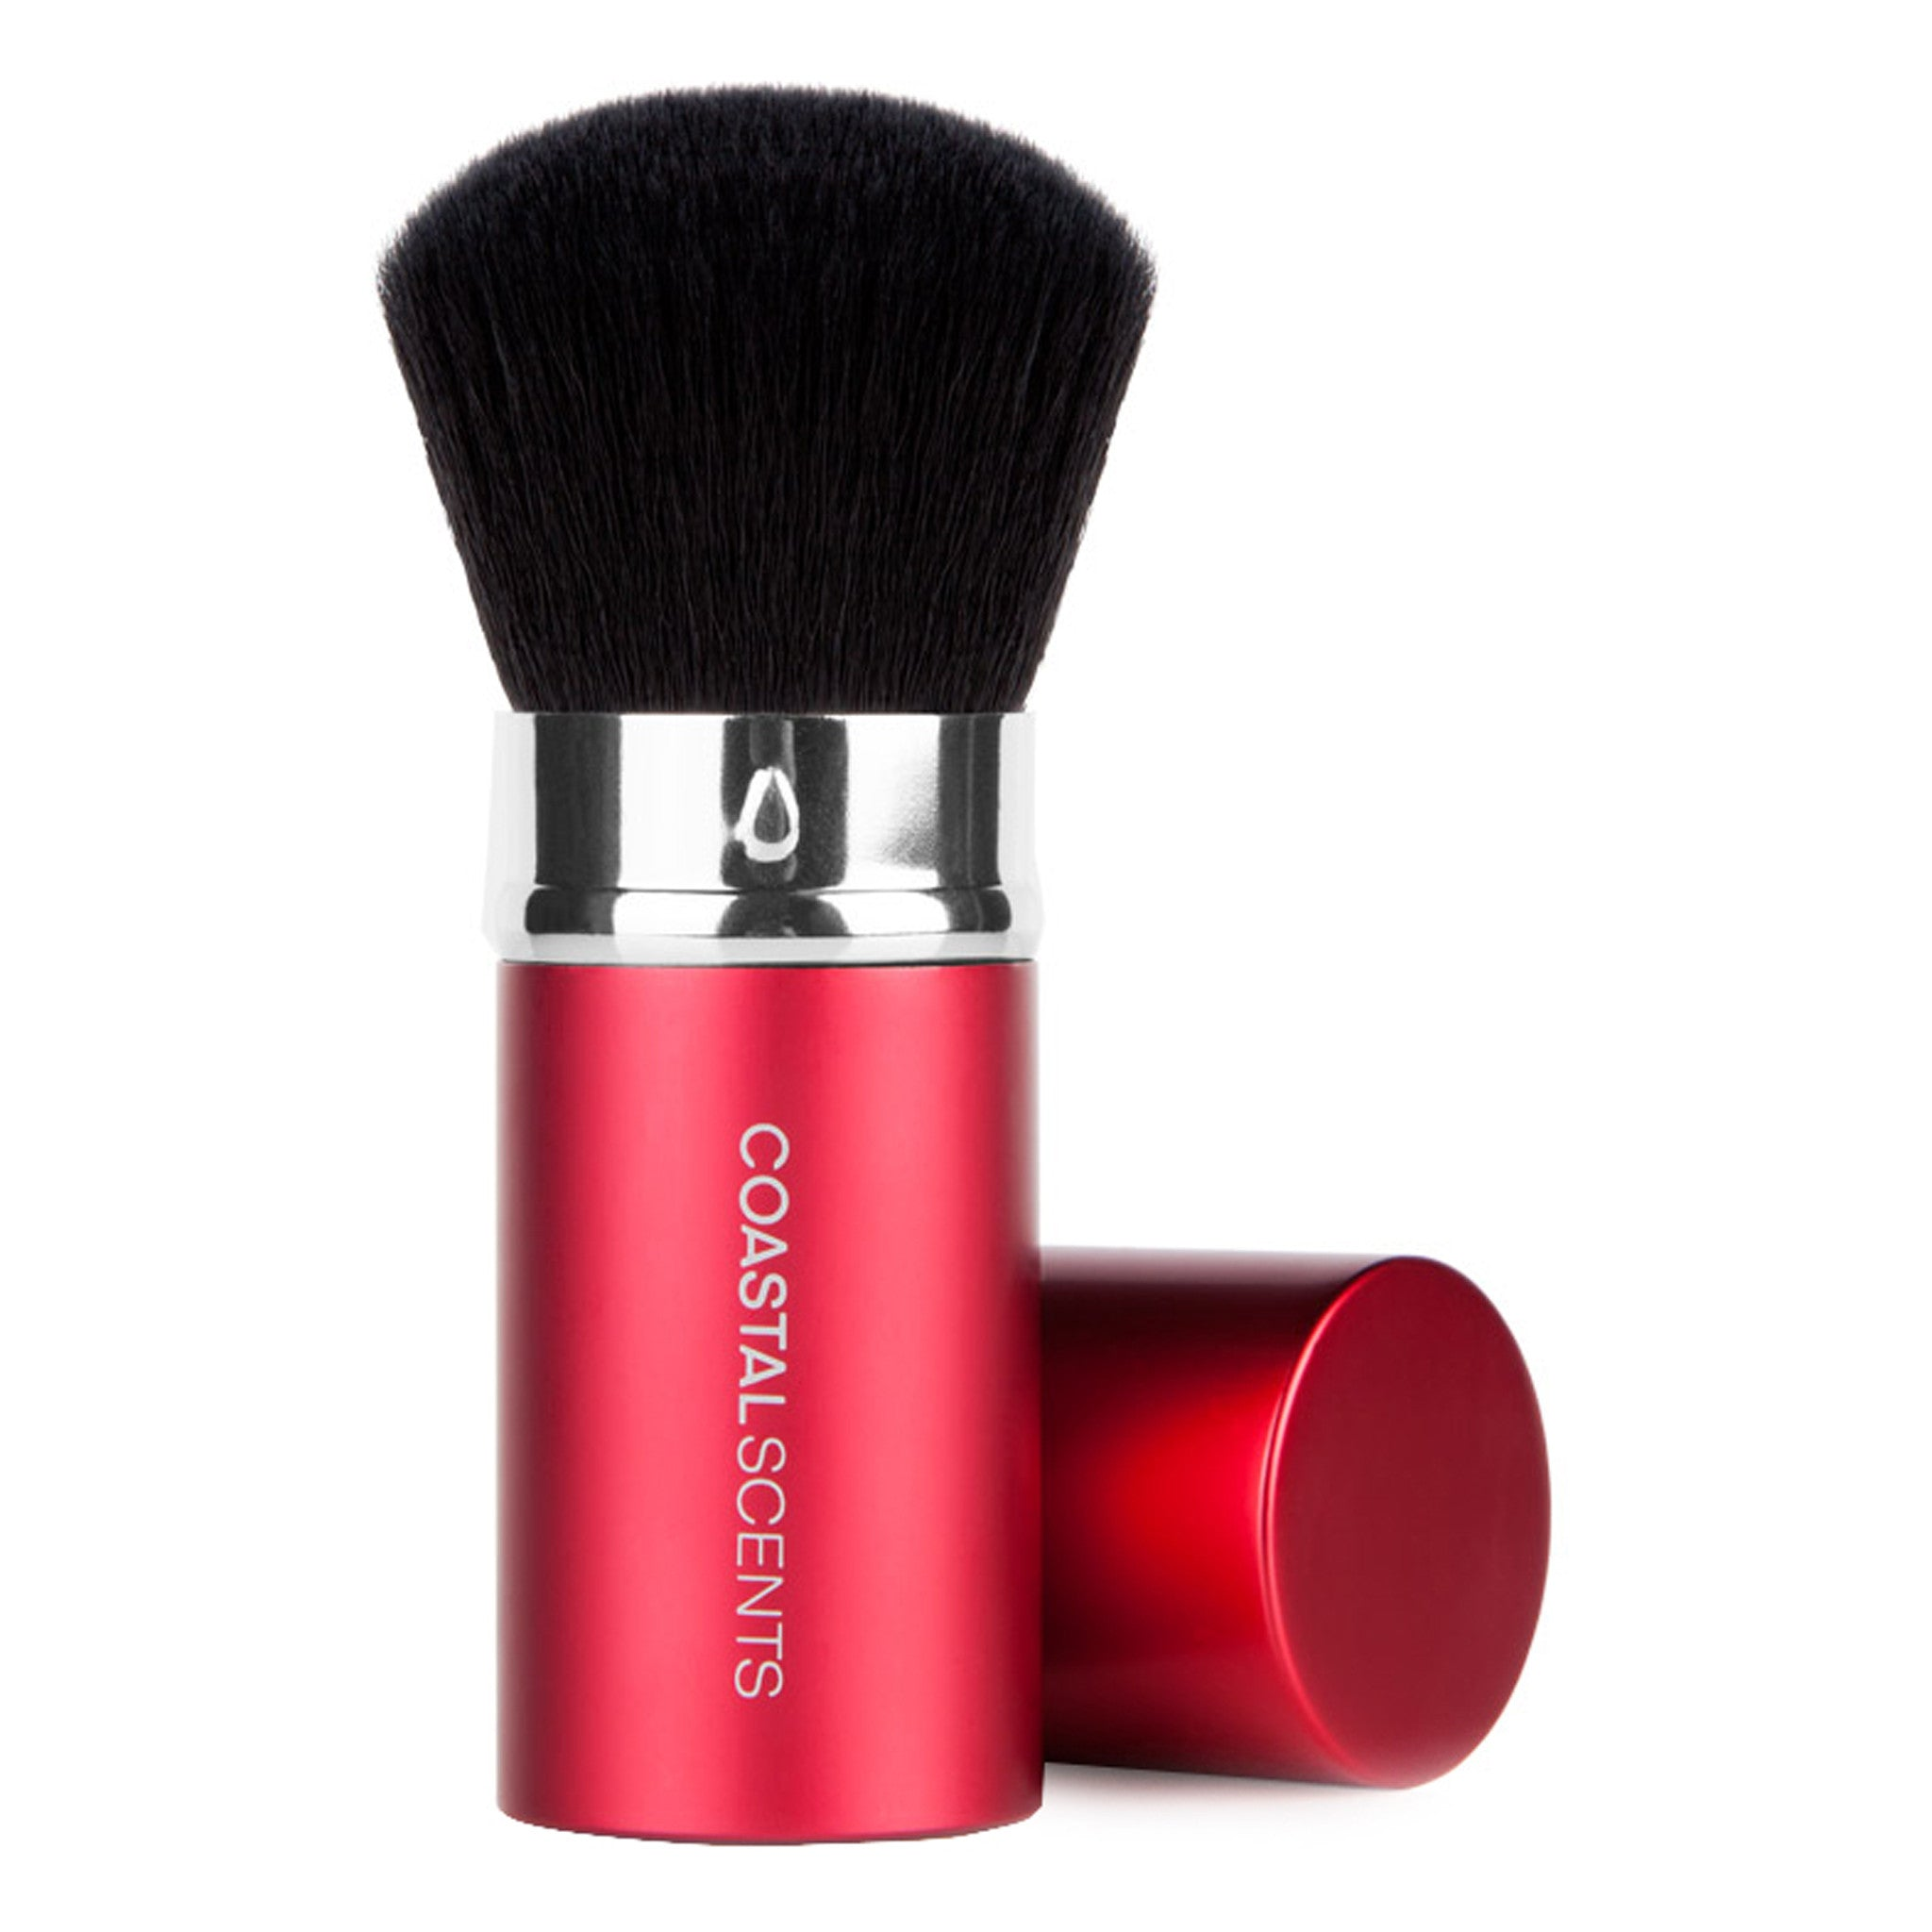 Coastal Scents coupon: Retractable Powder Brush